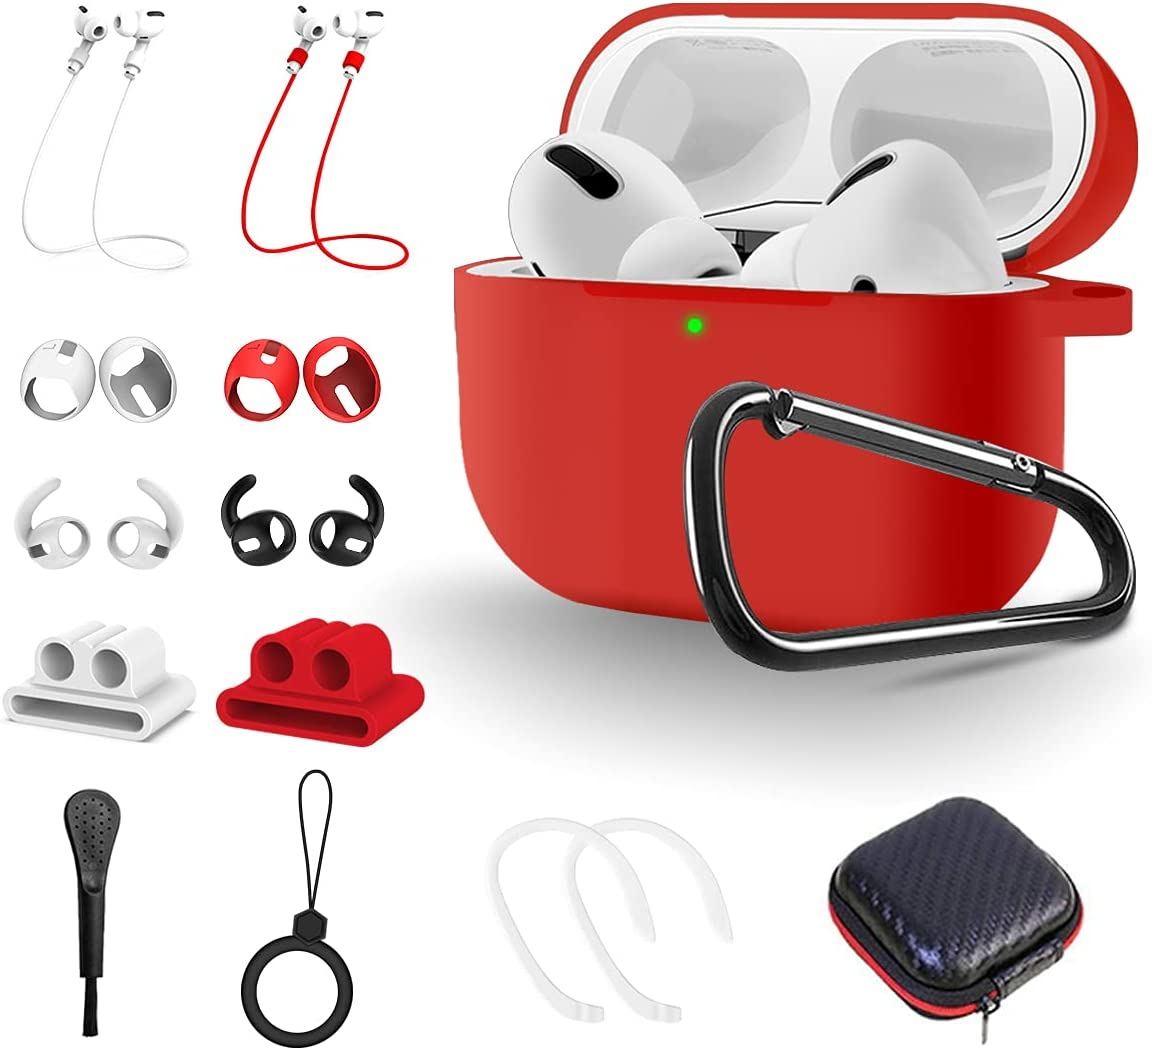 TOLUOHU AirPods Pro Case, 14 in 1 Protective Cover Silicone Accessories Set for Apple AirPods 3rd Gen Charging case, with Ear Hooks/Watch Holder/Eartips/ Strap/Brush/Ring/Keychain/Carrying Box(Red)